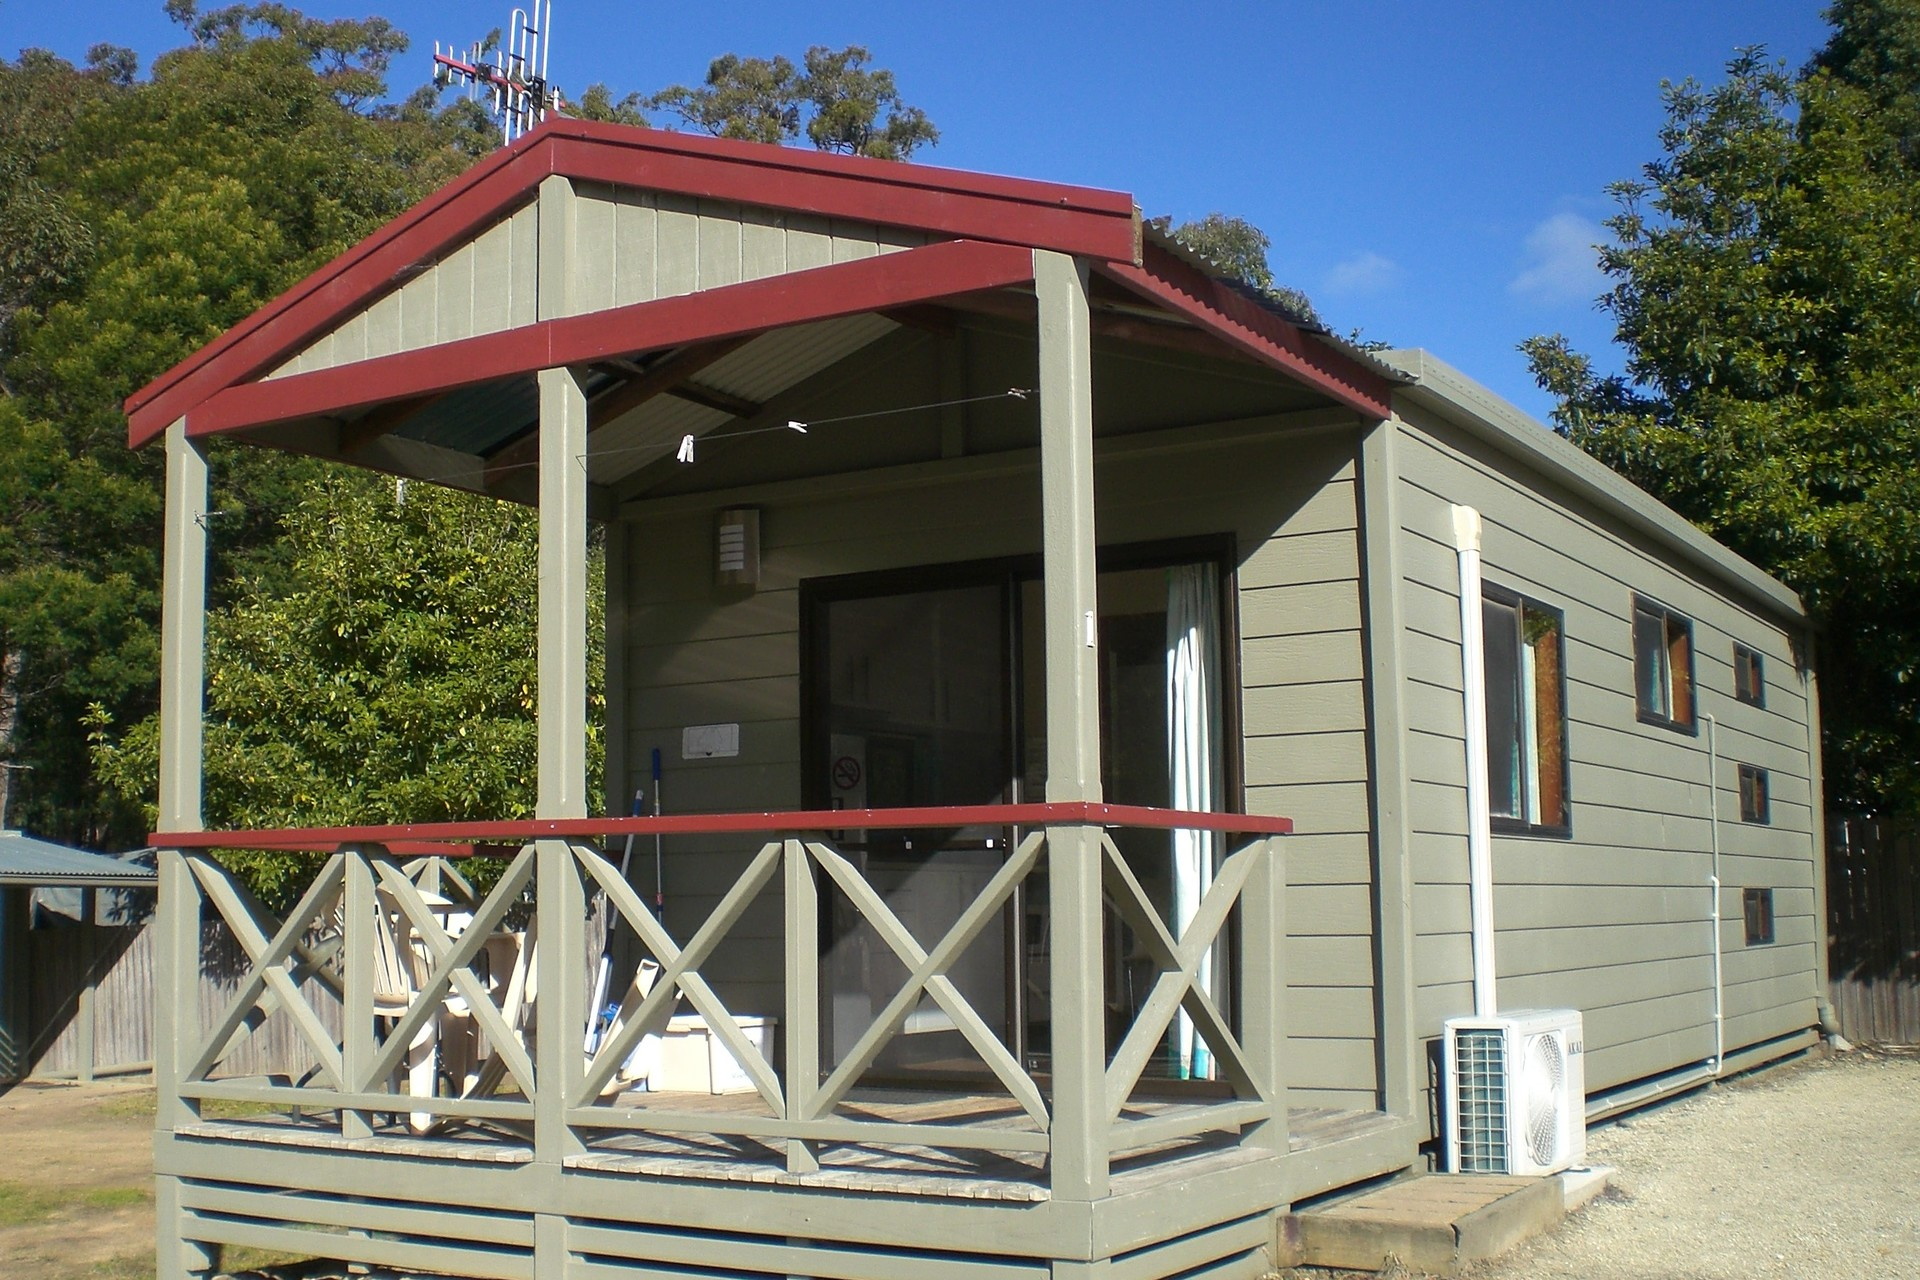 Shady Gully Caravan Park